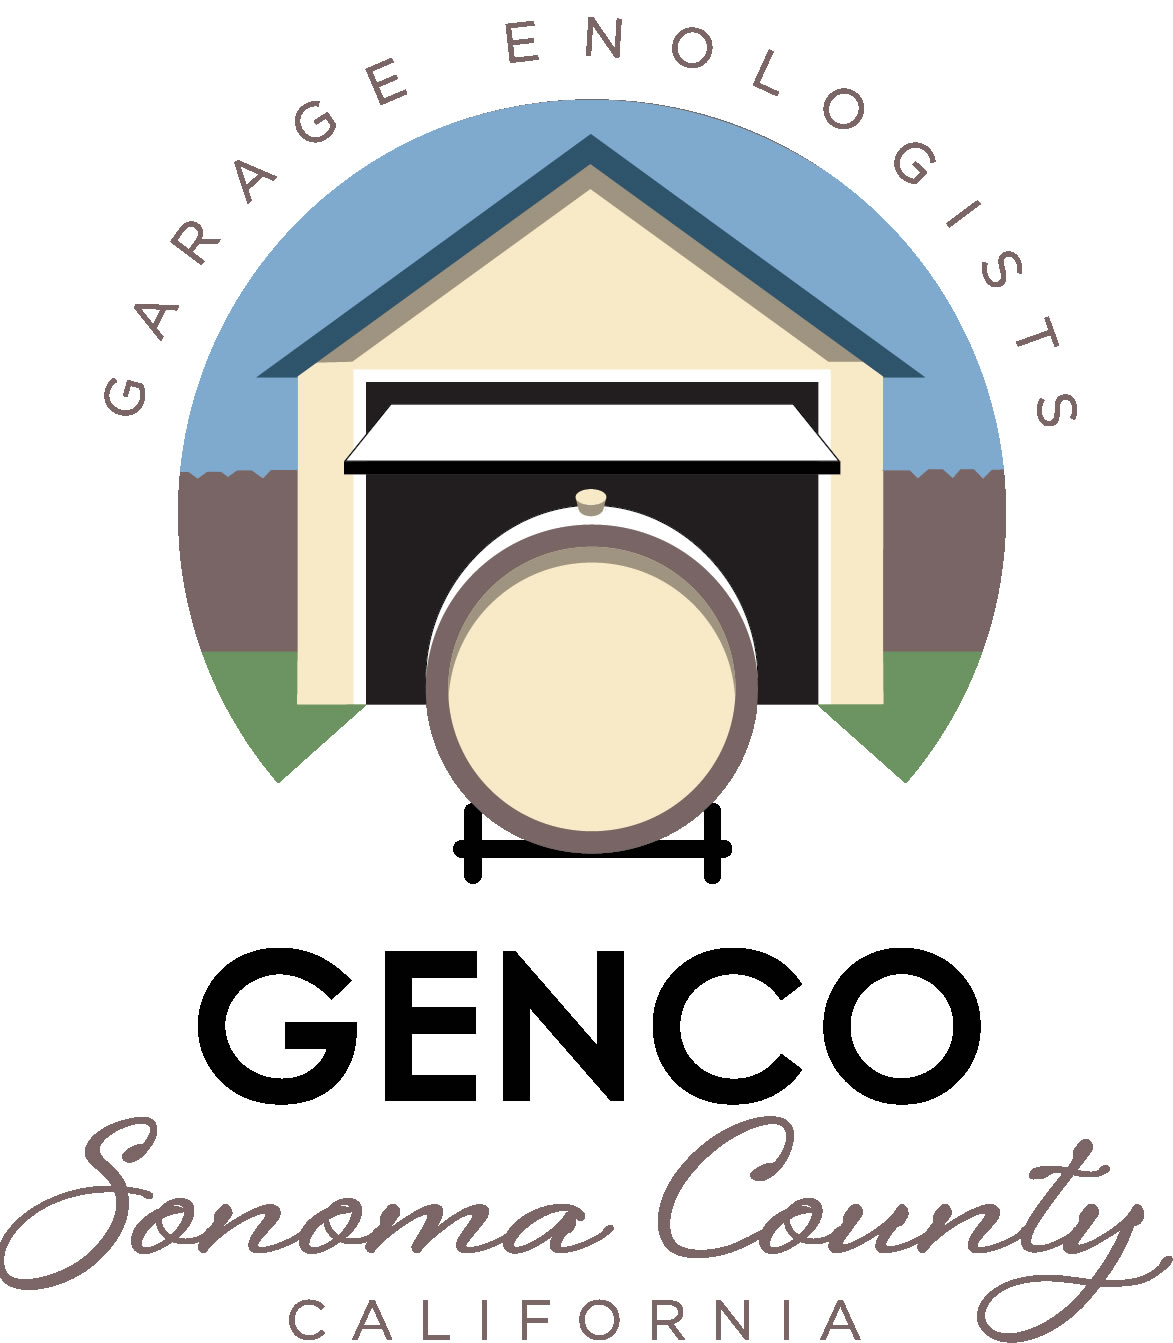 About GENCO winemakers